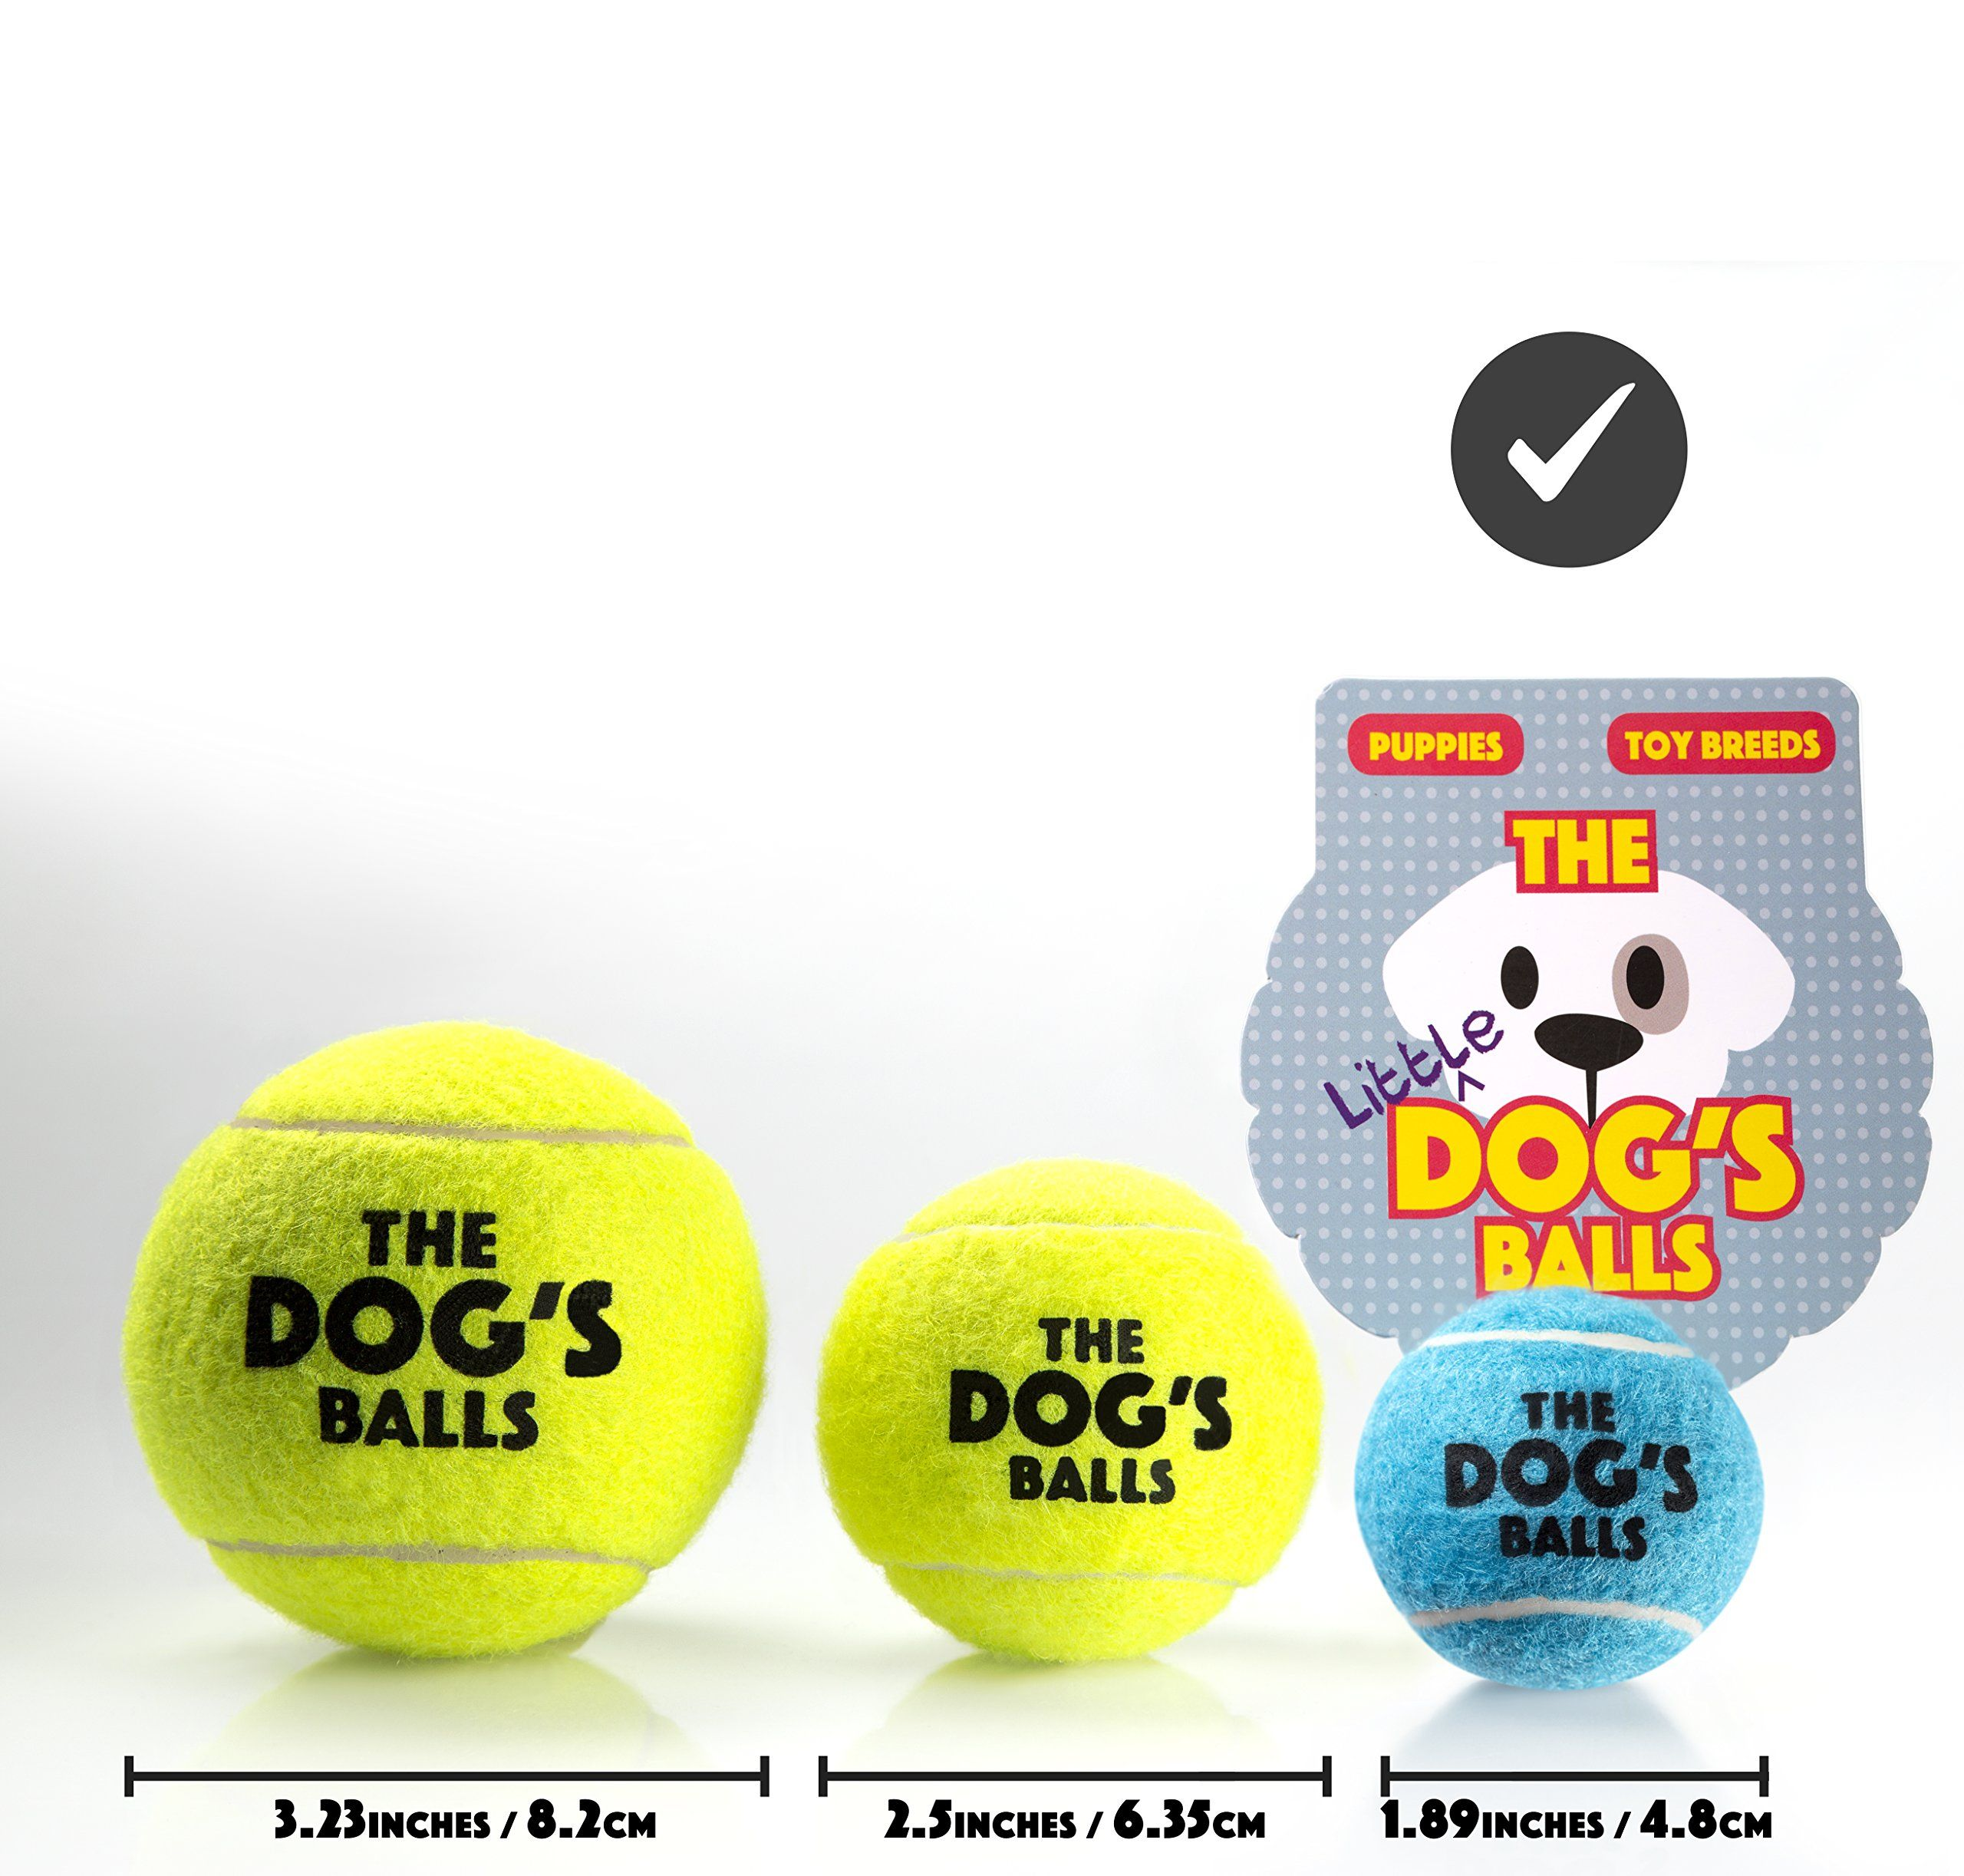 The Dogs Balls Tennis Balls For Dogs Premium Mini Dog Toy For Puppies And Small Dogs Puppy Exercise Play Training And F Dog Ball Dog Toys Toy Puppies